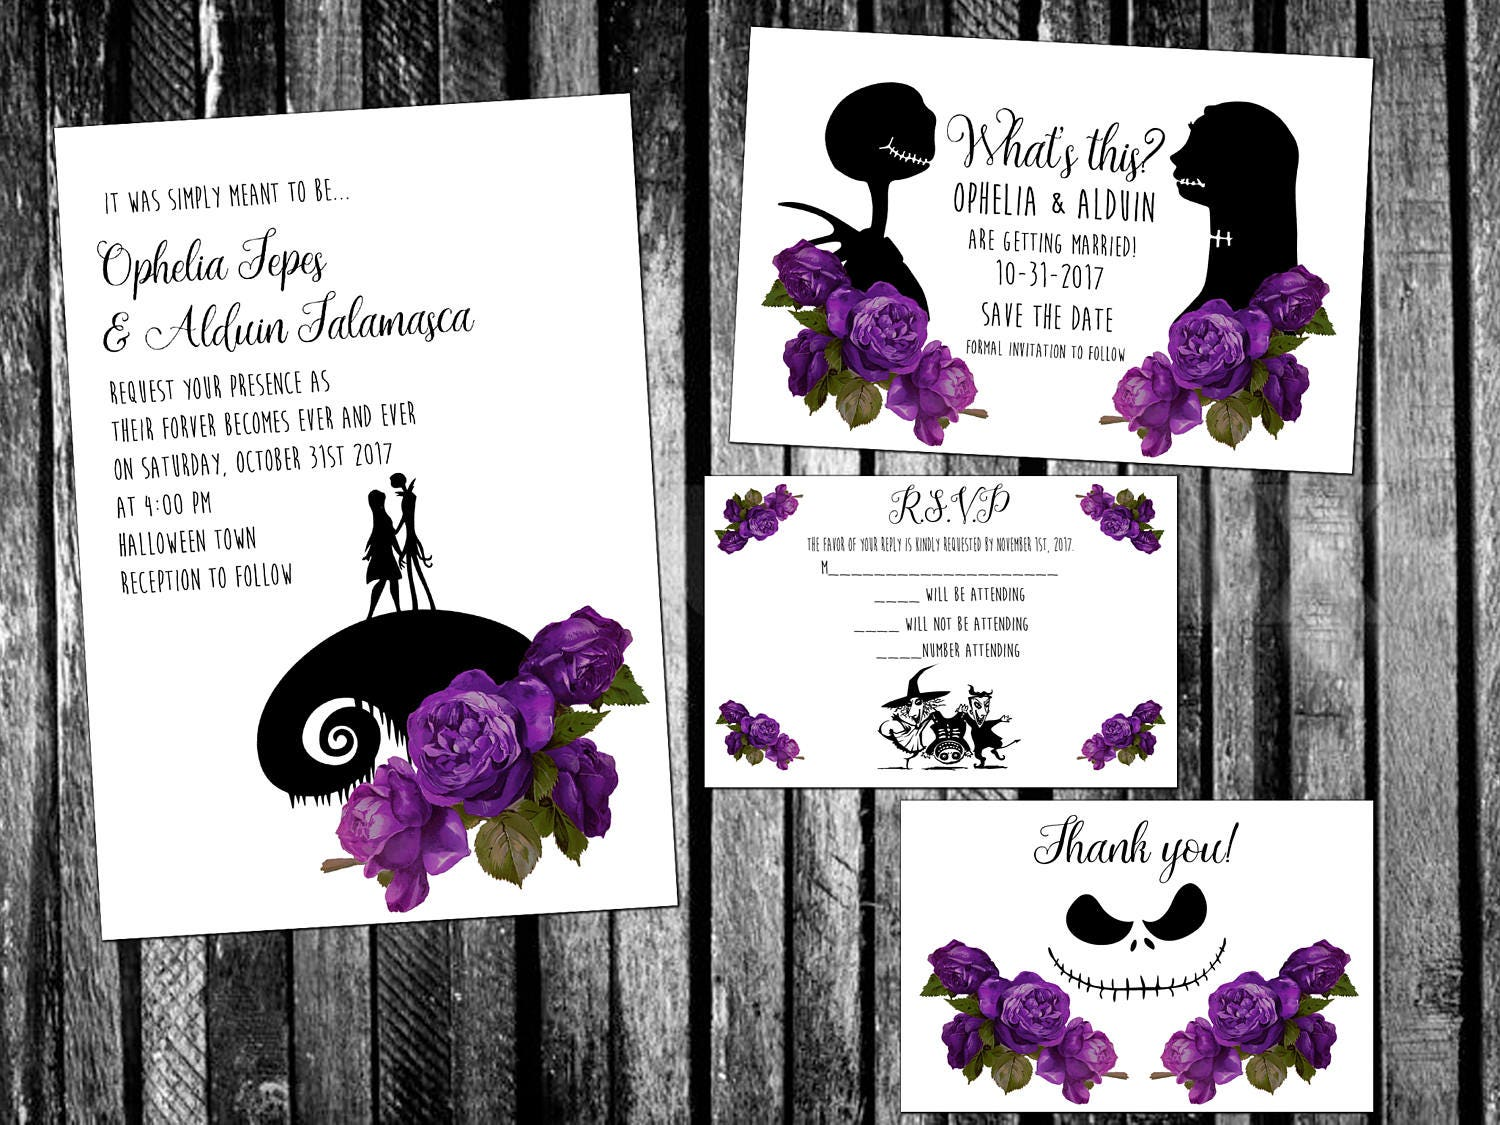 Roses The Nightmare Before Christmas Inspired Wedding | Etsy